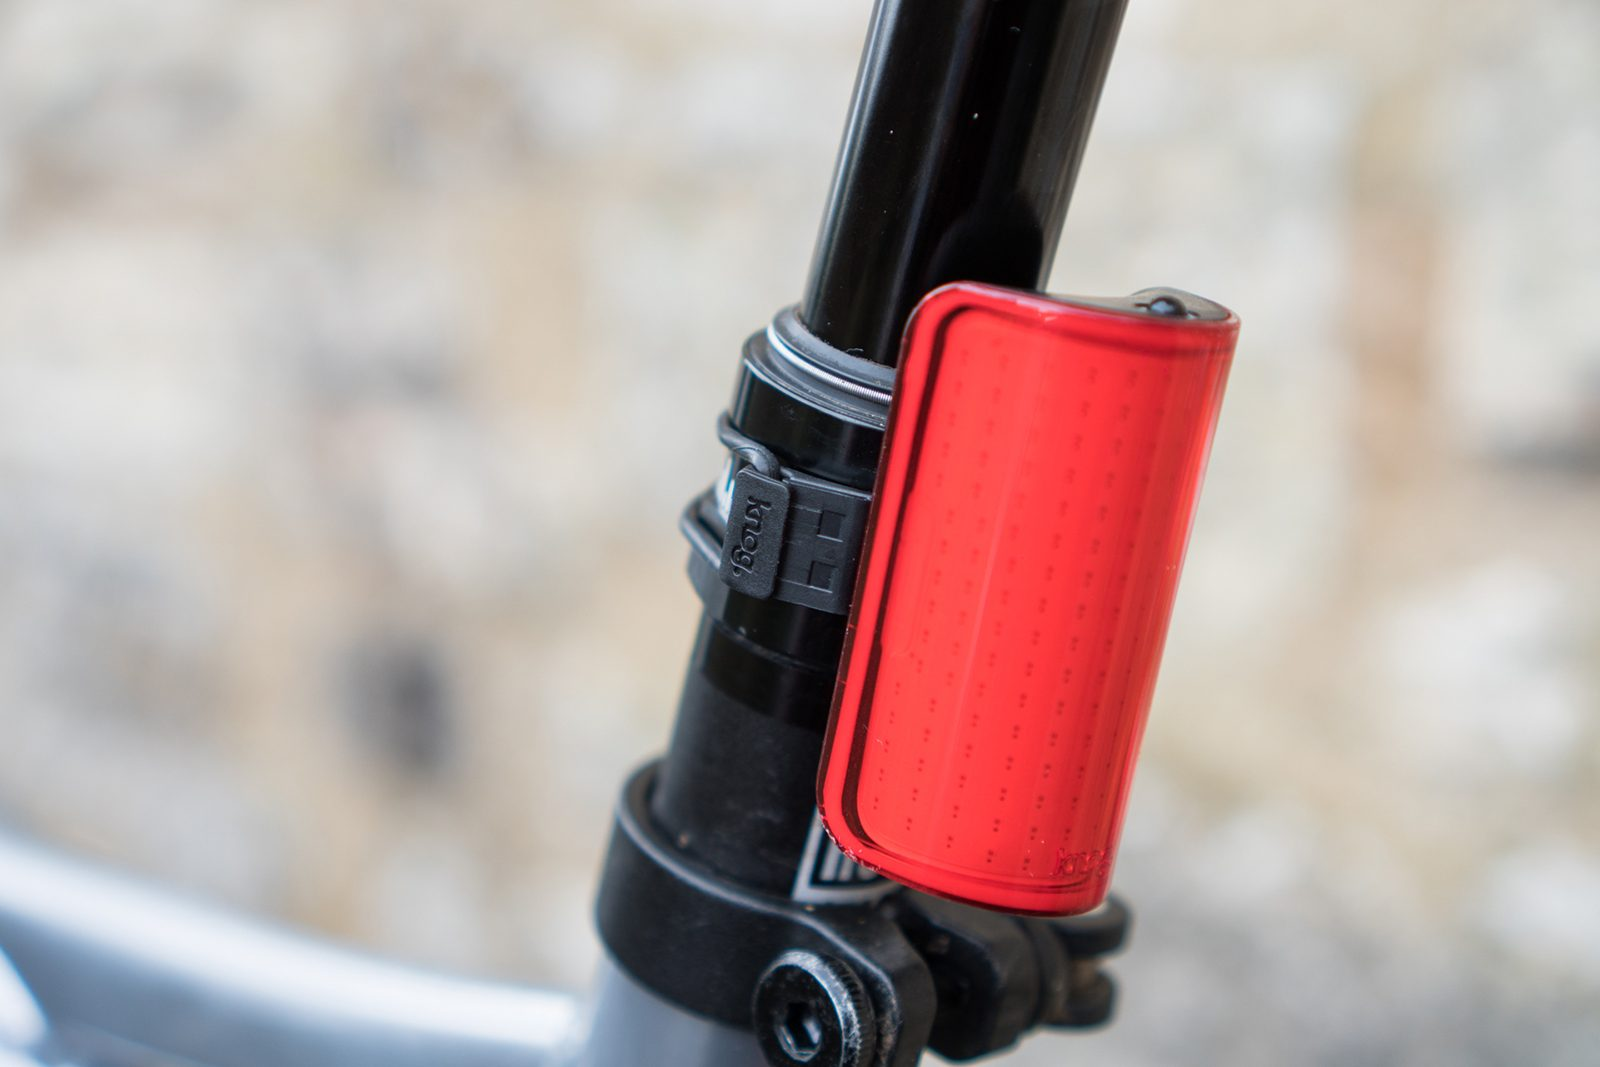 Knog Mid Cobber Rear Bike Light 170 Lumen Bike Tail Light